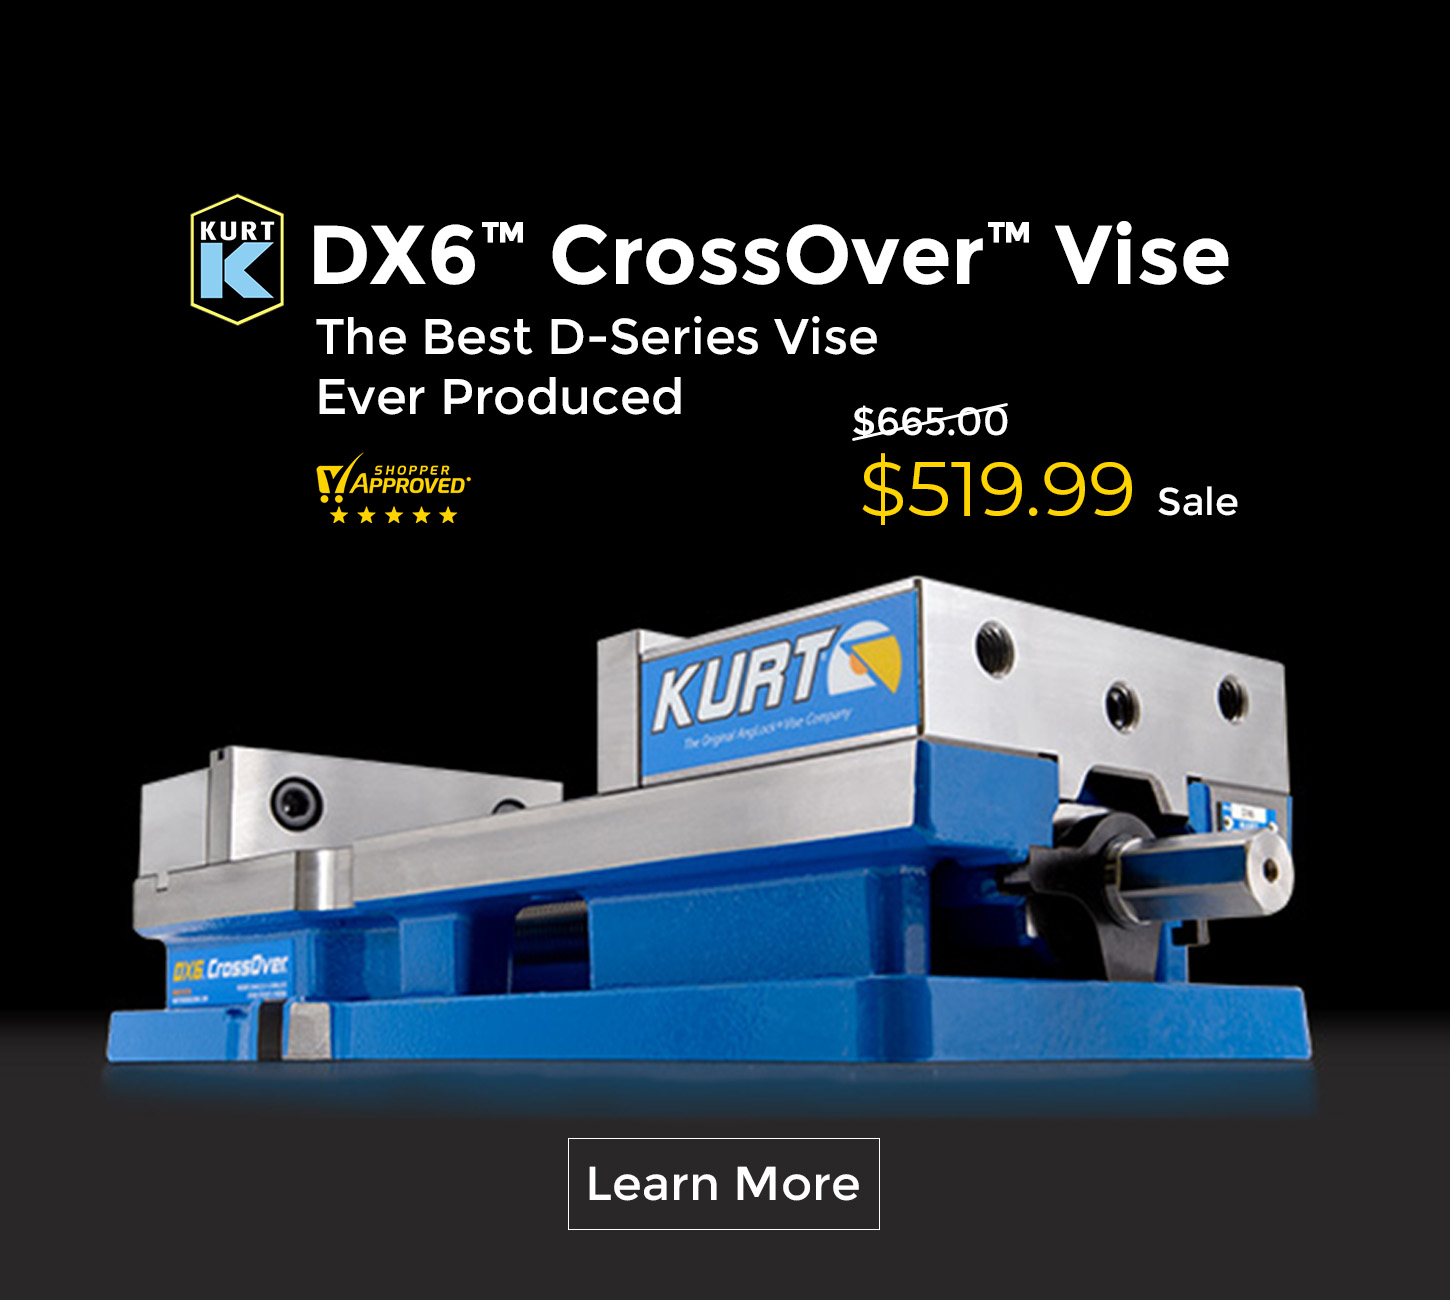 Kurt DX6 on Sale